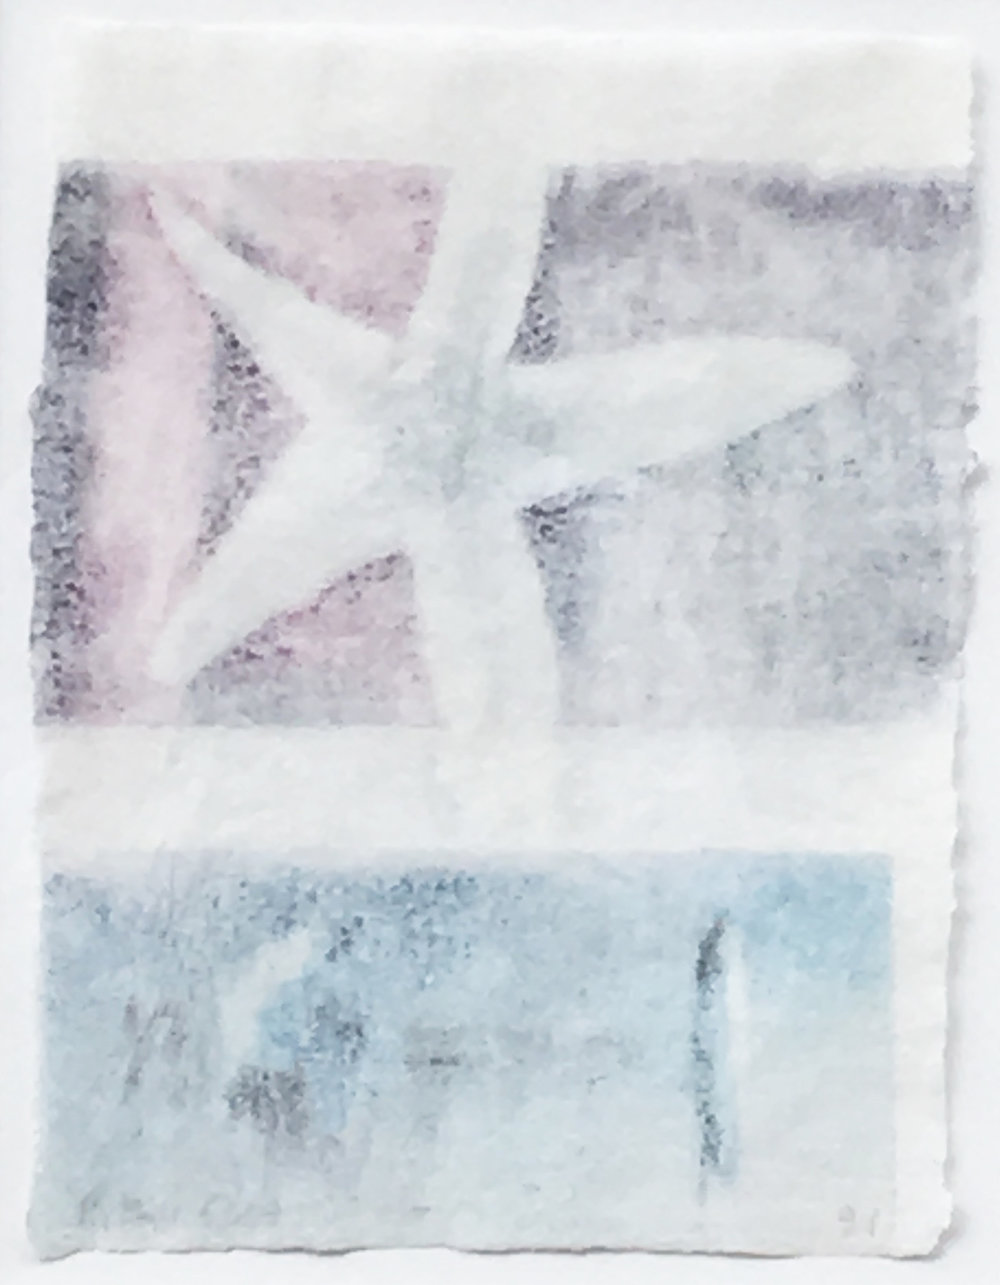 Robert Rauschenberg. Untitled (Starfish), 1991.